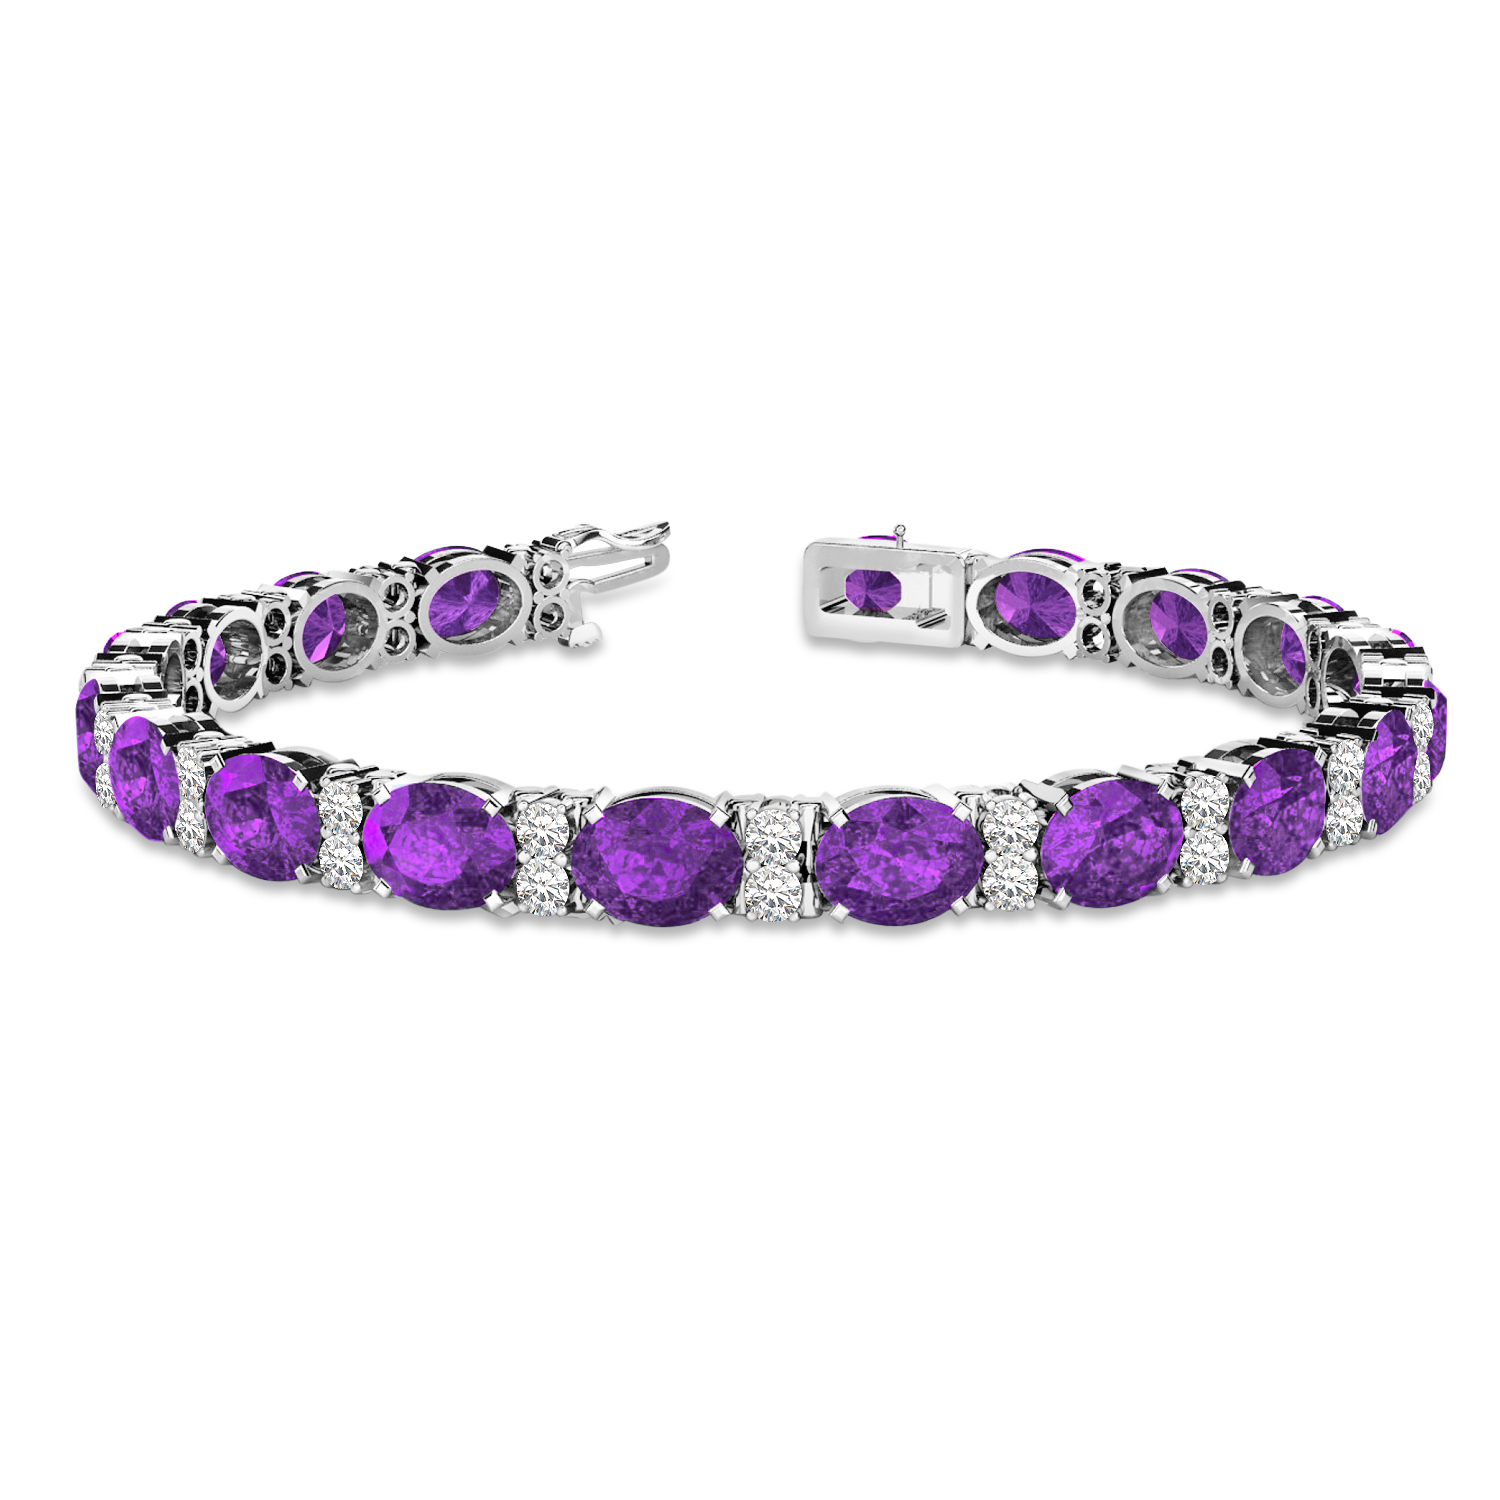 Diamond and Oval Cut Amethyst Tennis Bracelet 14k White Gold (13.62ct)